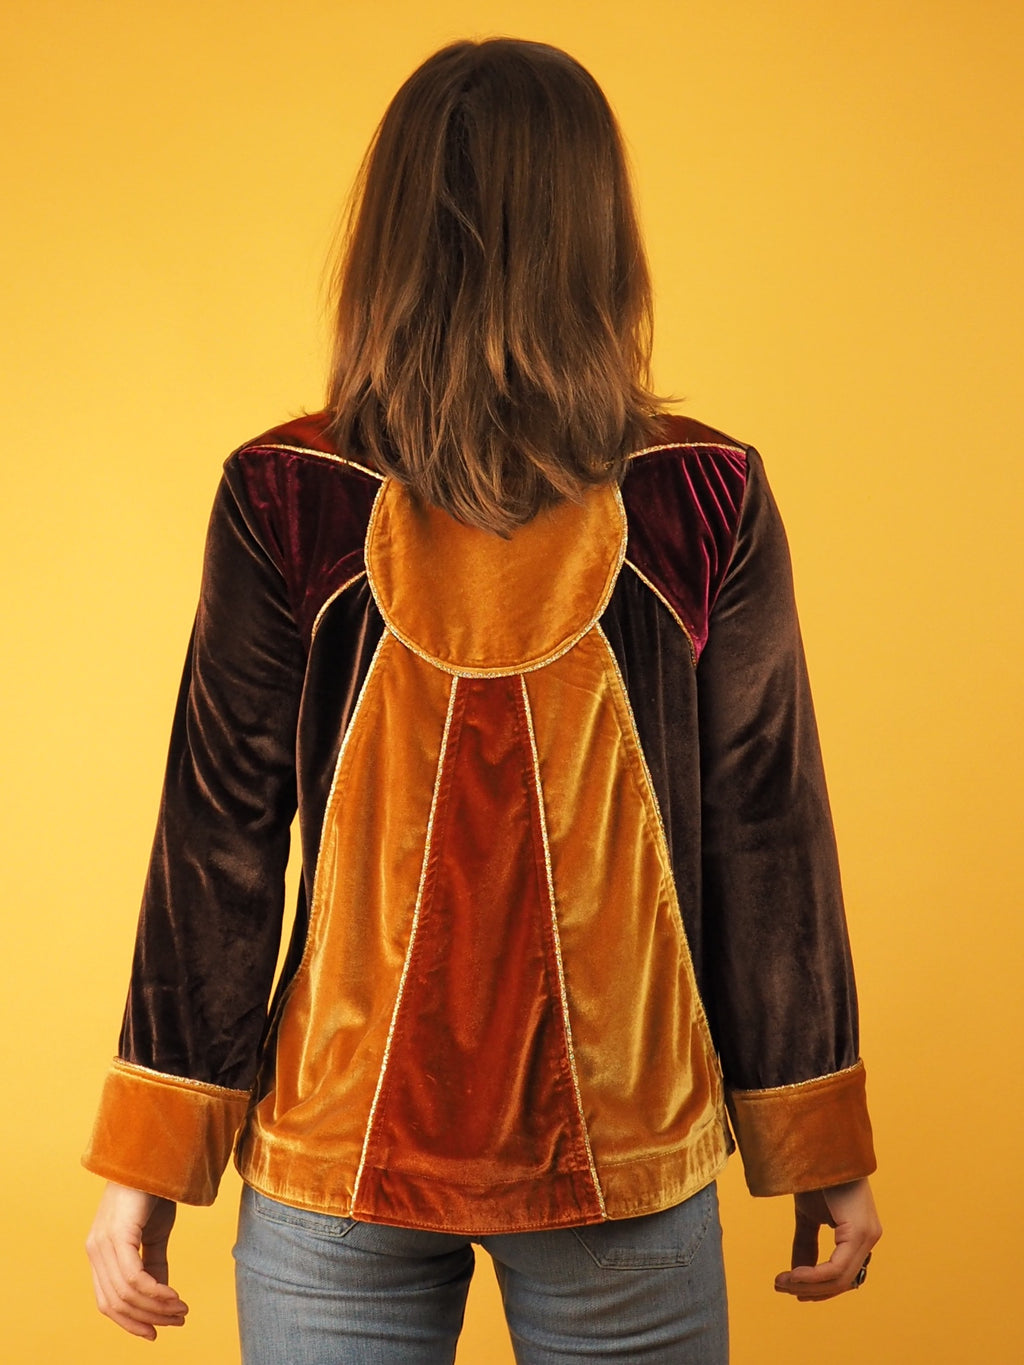 The Velvet Sunburst Jacket - Violet House